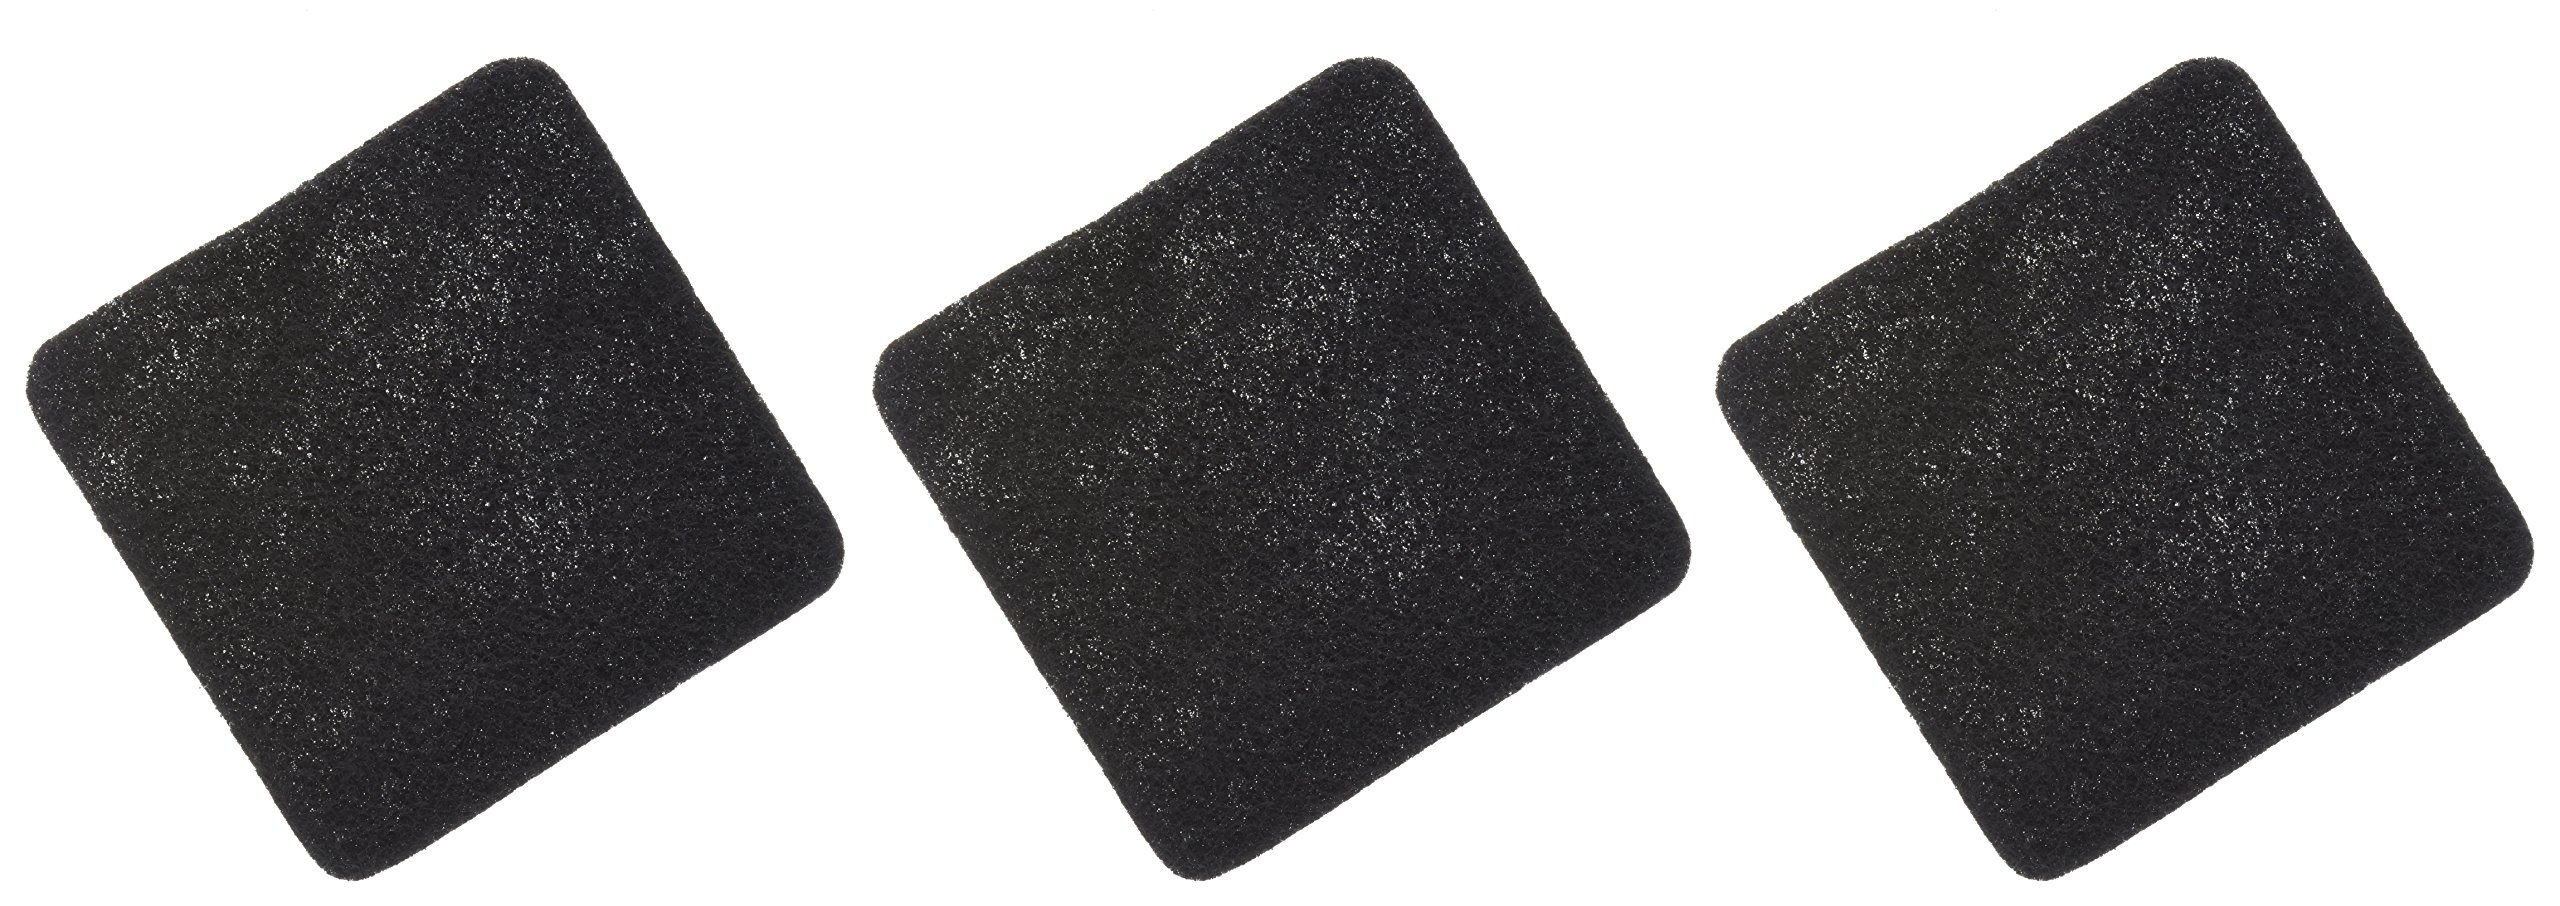 Weller WSA350F Carbon Filters for WSA350 Fume Absorber (3 Pack)